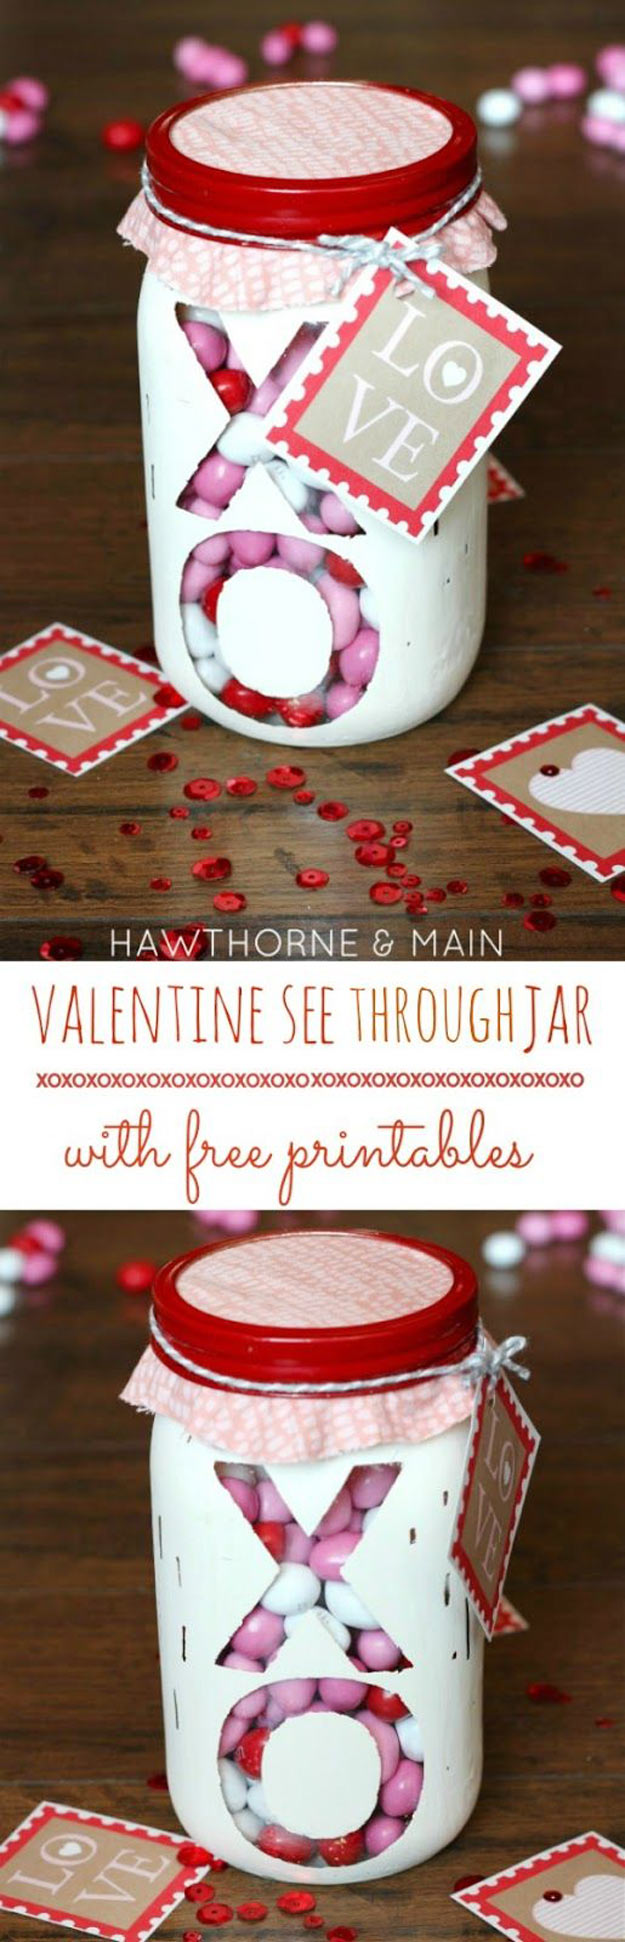 Mason Jar Valentine Gifts and Crafts   DIY Ideas for Valentines Day for Cute Gift Giving and Decor   Valentine-See-Through-Jar   #valentines